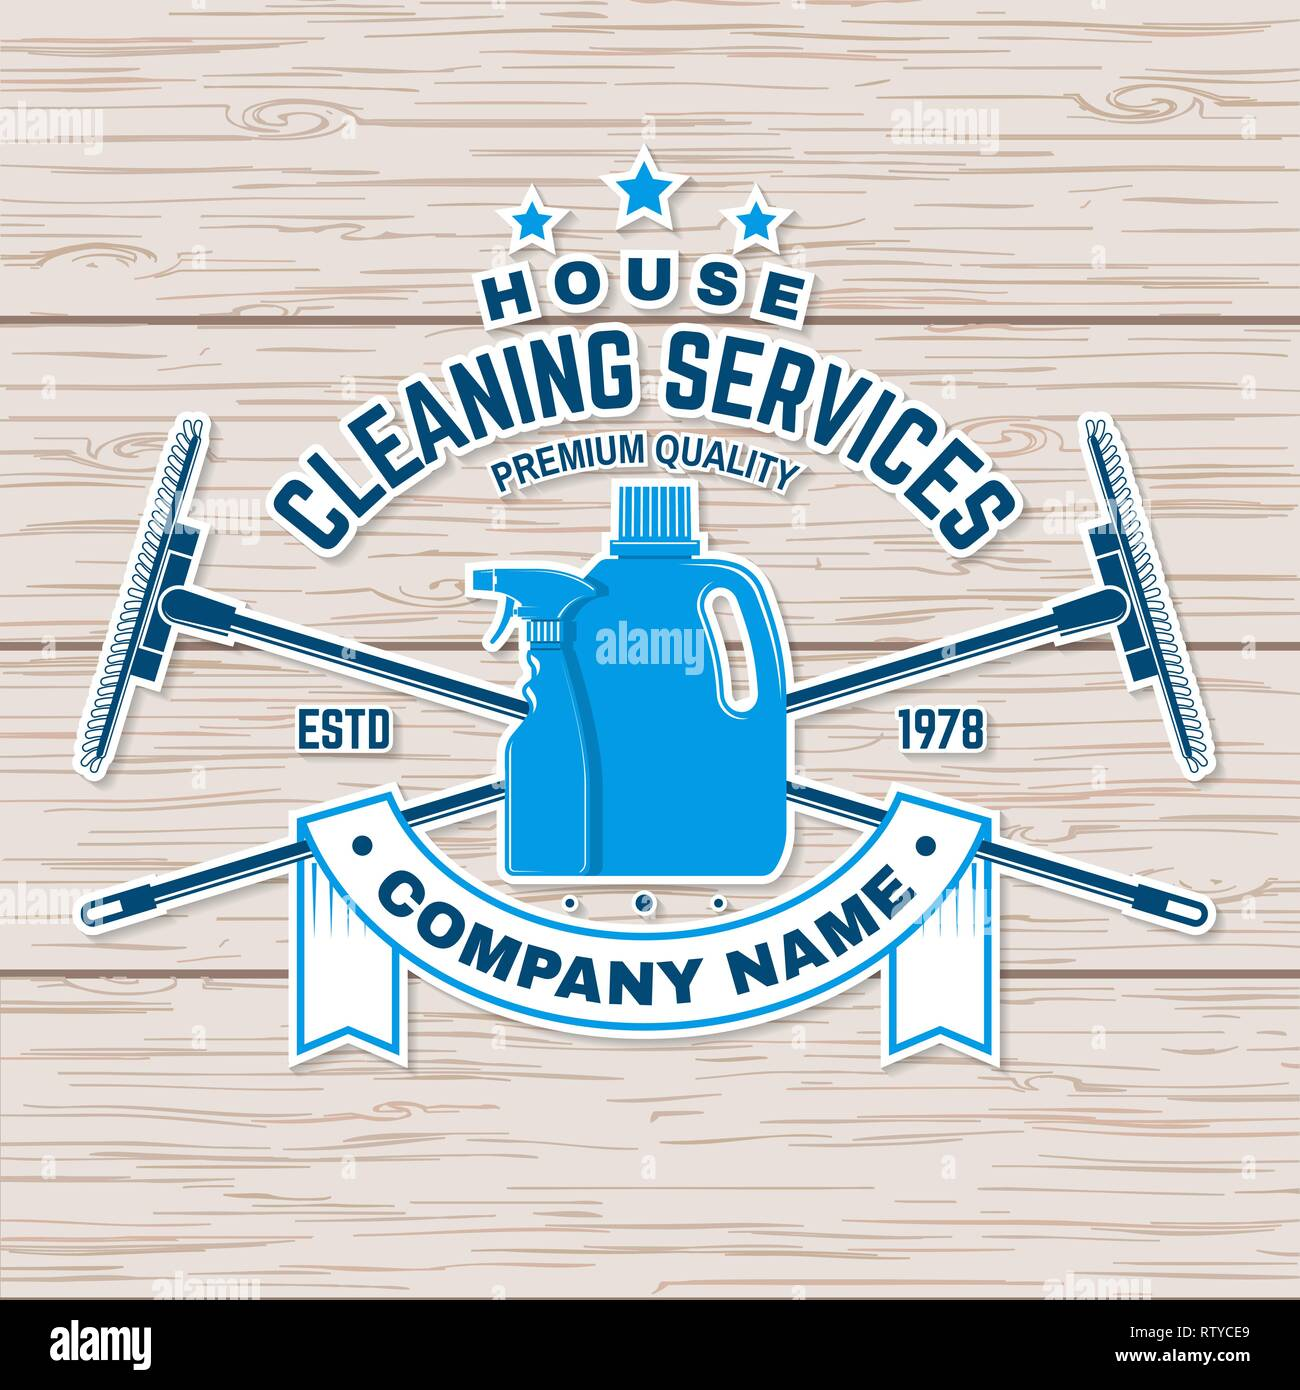 Cleaning company badge, emblem  Vector illustration  Concept for